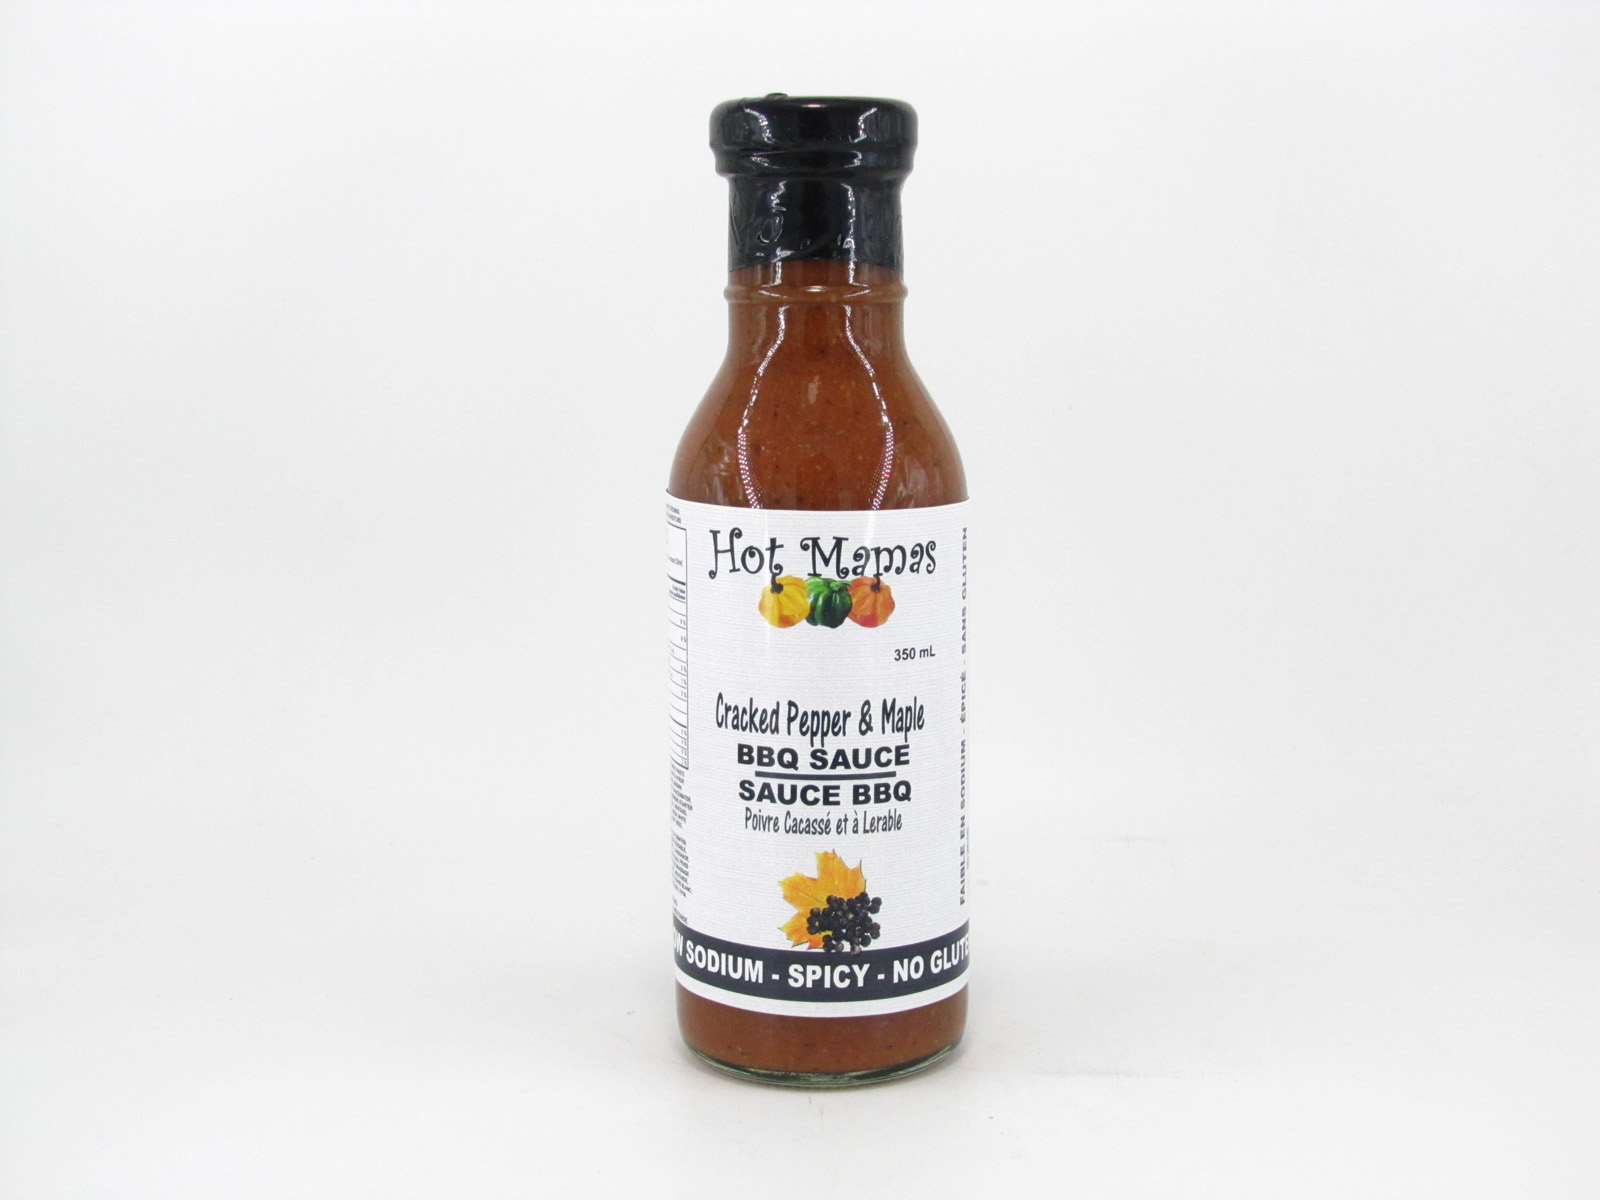 Hot Mamas - Cracked Pepper & Maple BBQ Sauce - front view